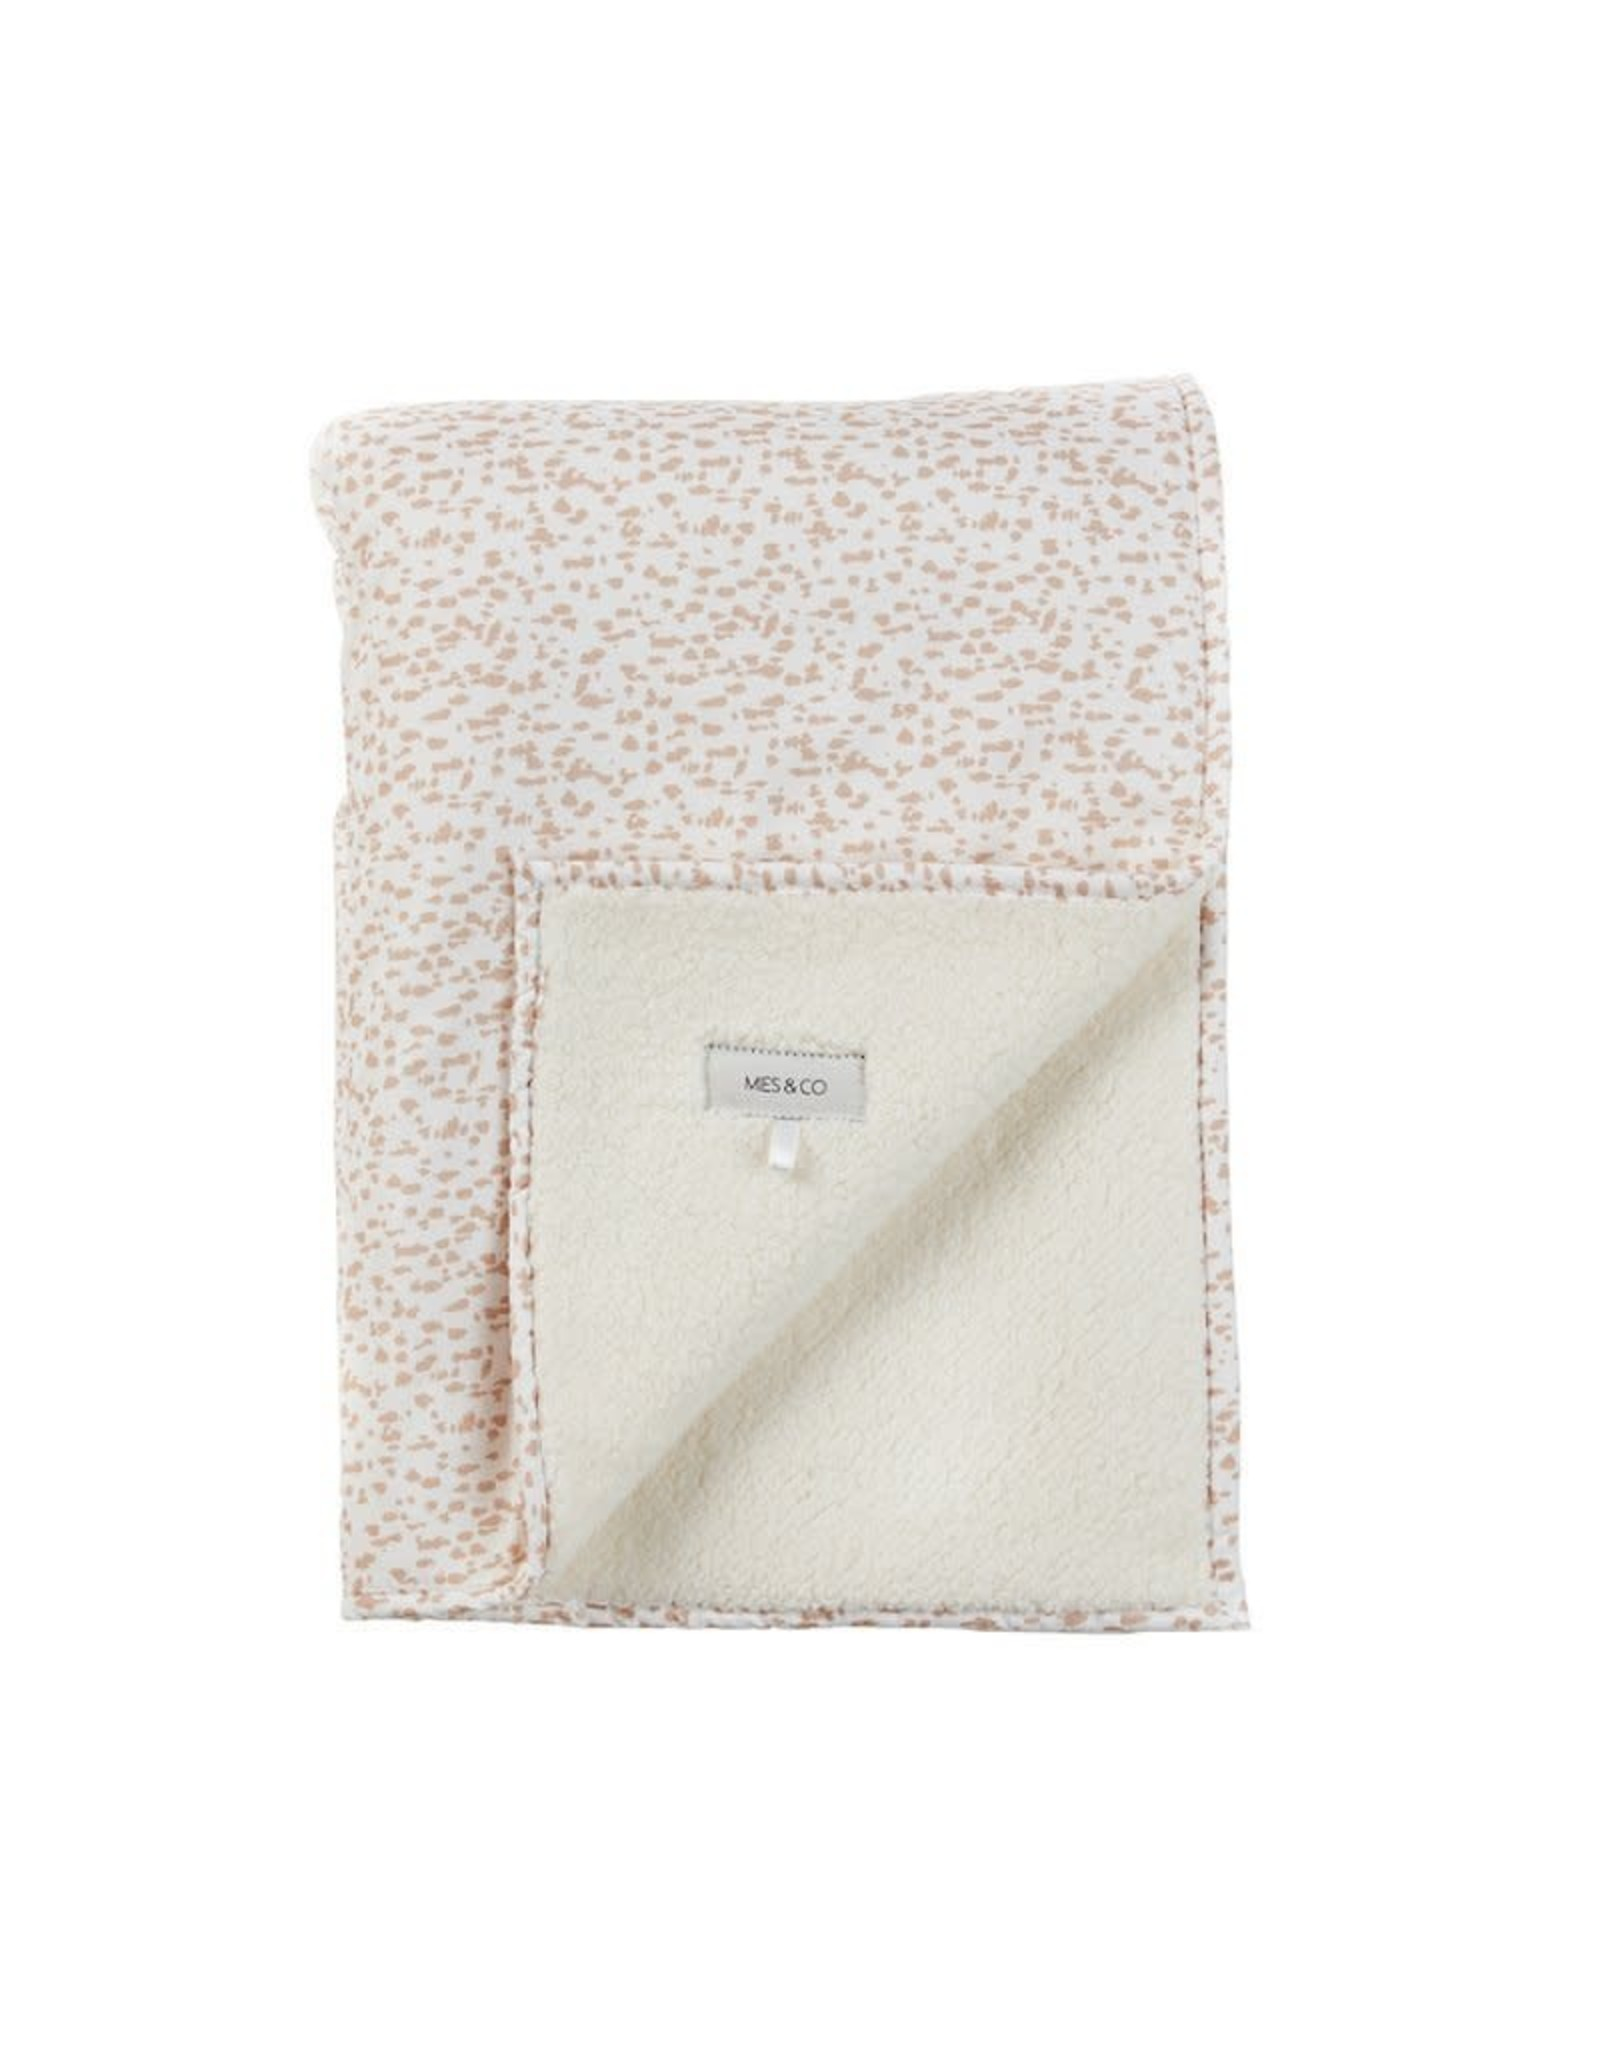 Mies & Co Mies & Co Baby Soft Blanket - Wild Child Chalk Pink 70x100